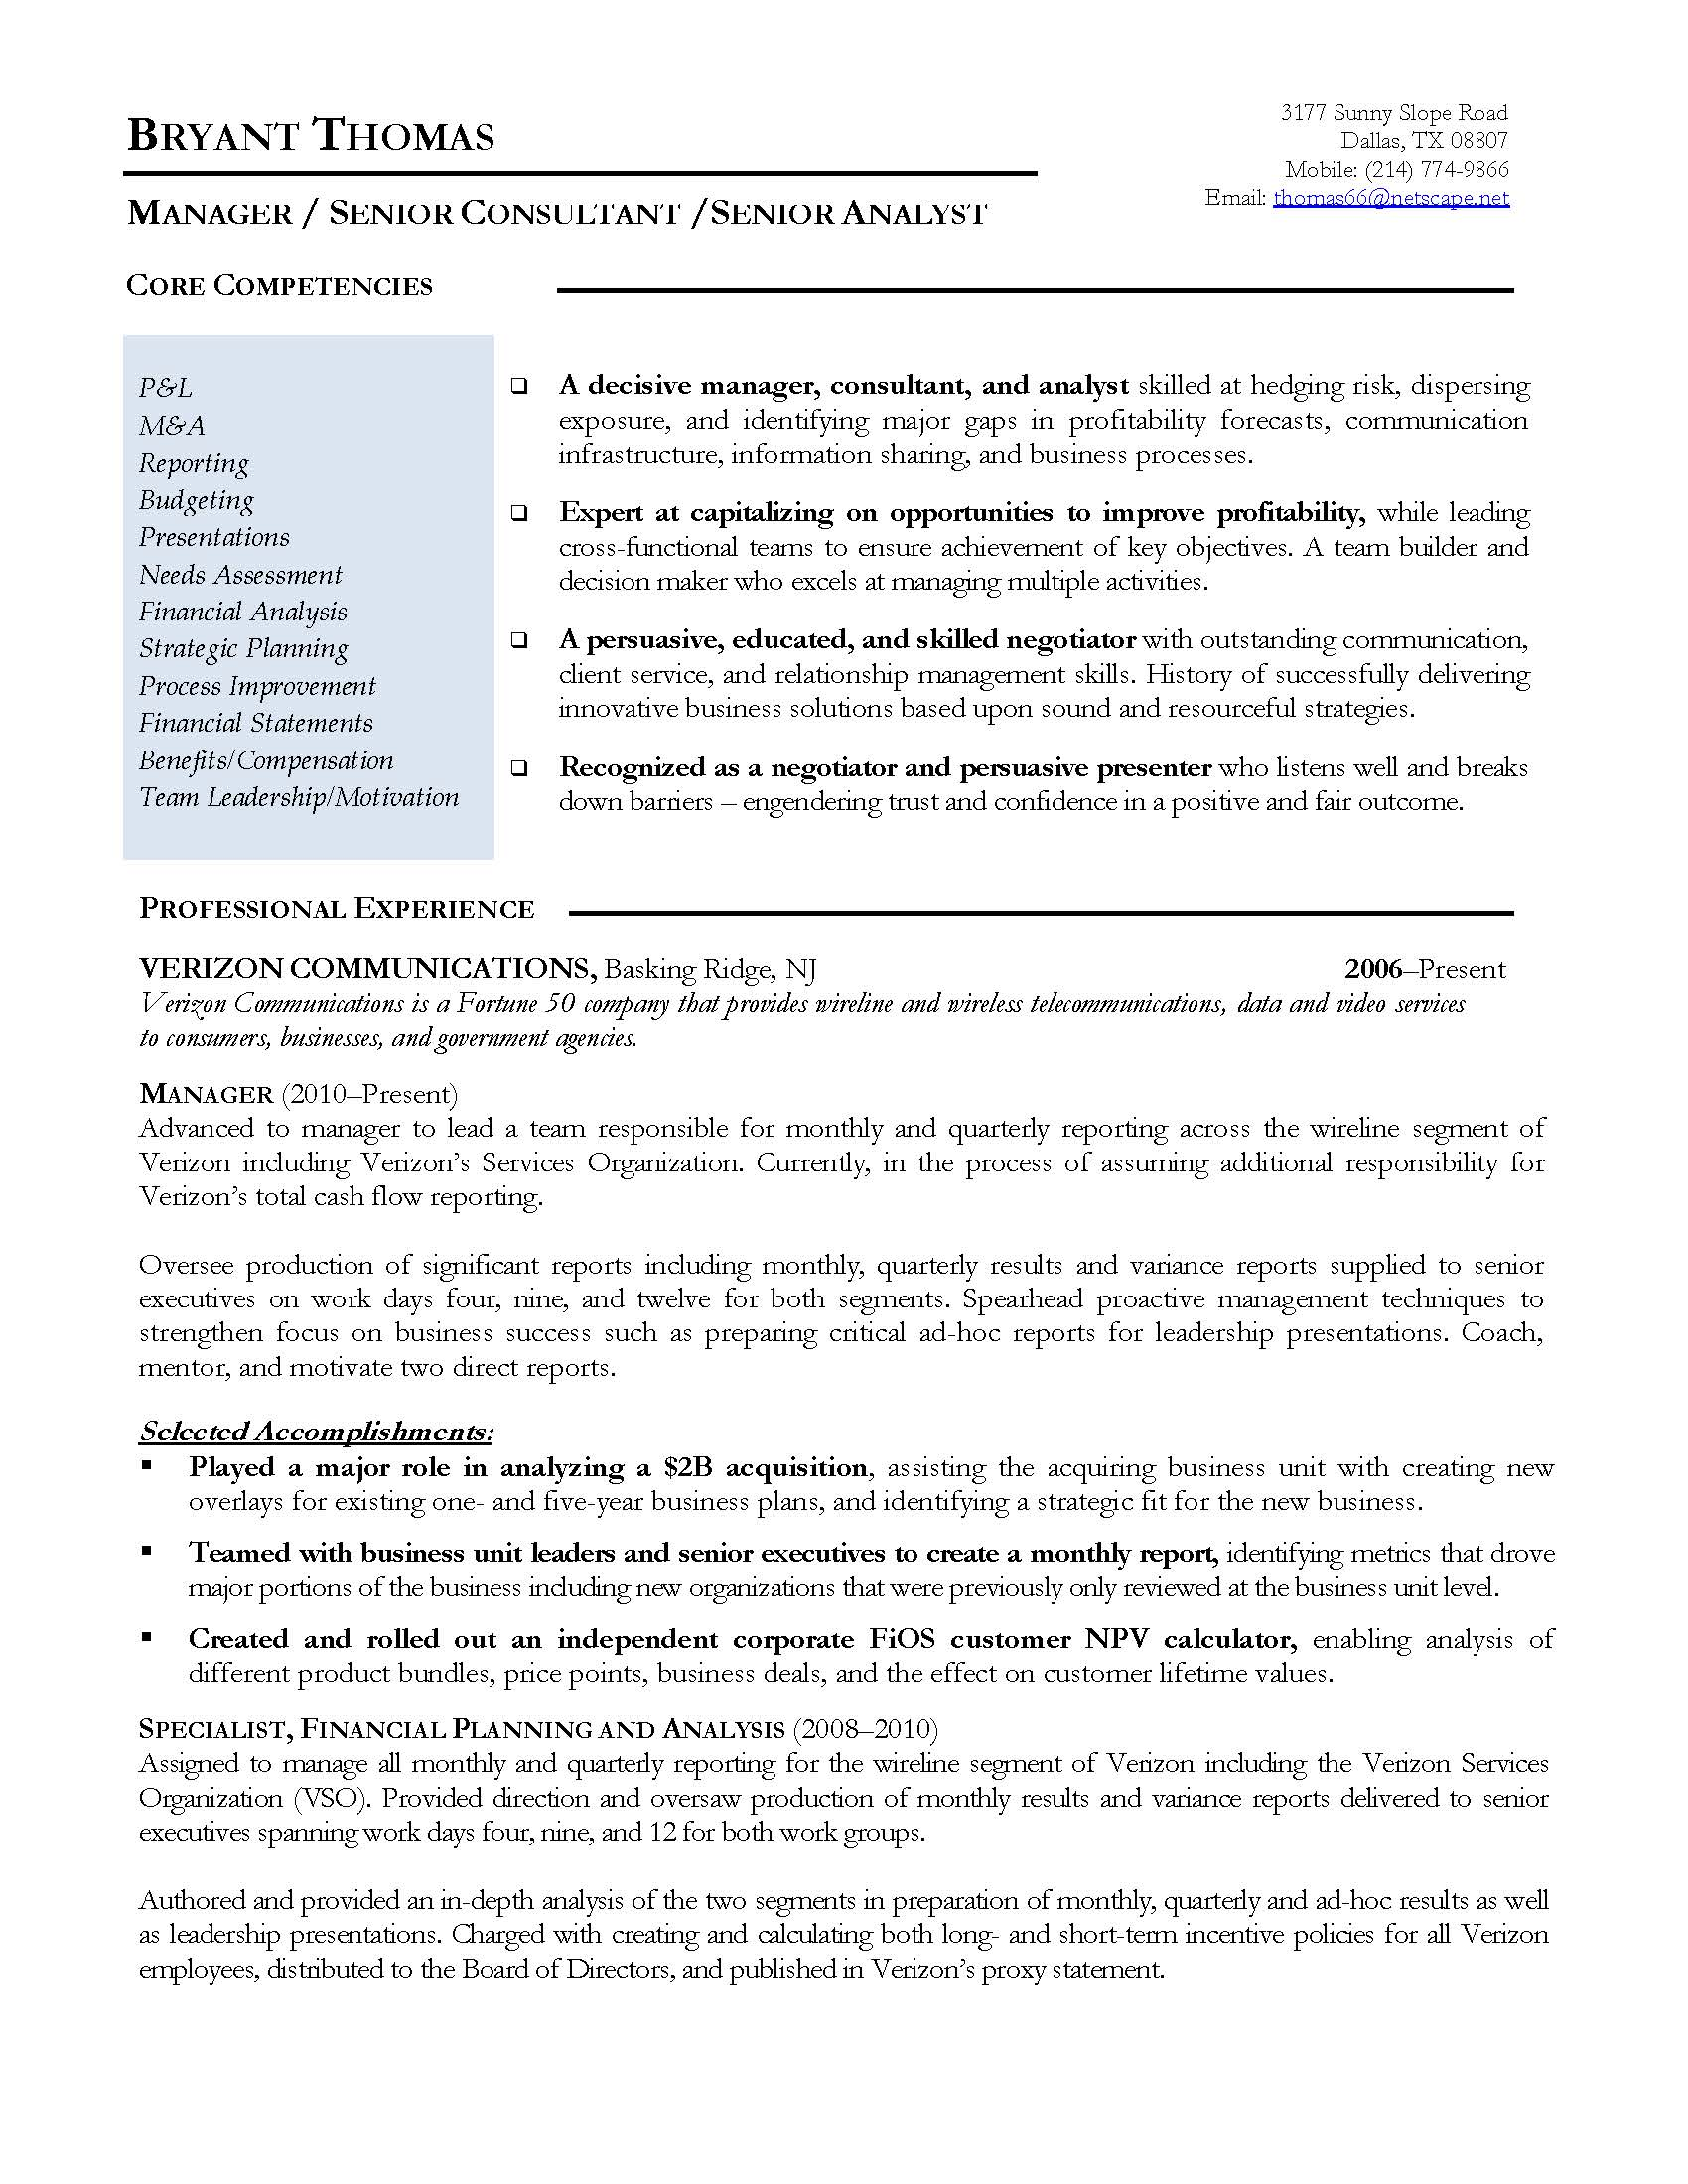 Superb Finance Manager Resume Sample, Provided By Elite Resume Writing Services Design Inspirations